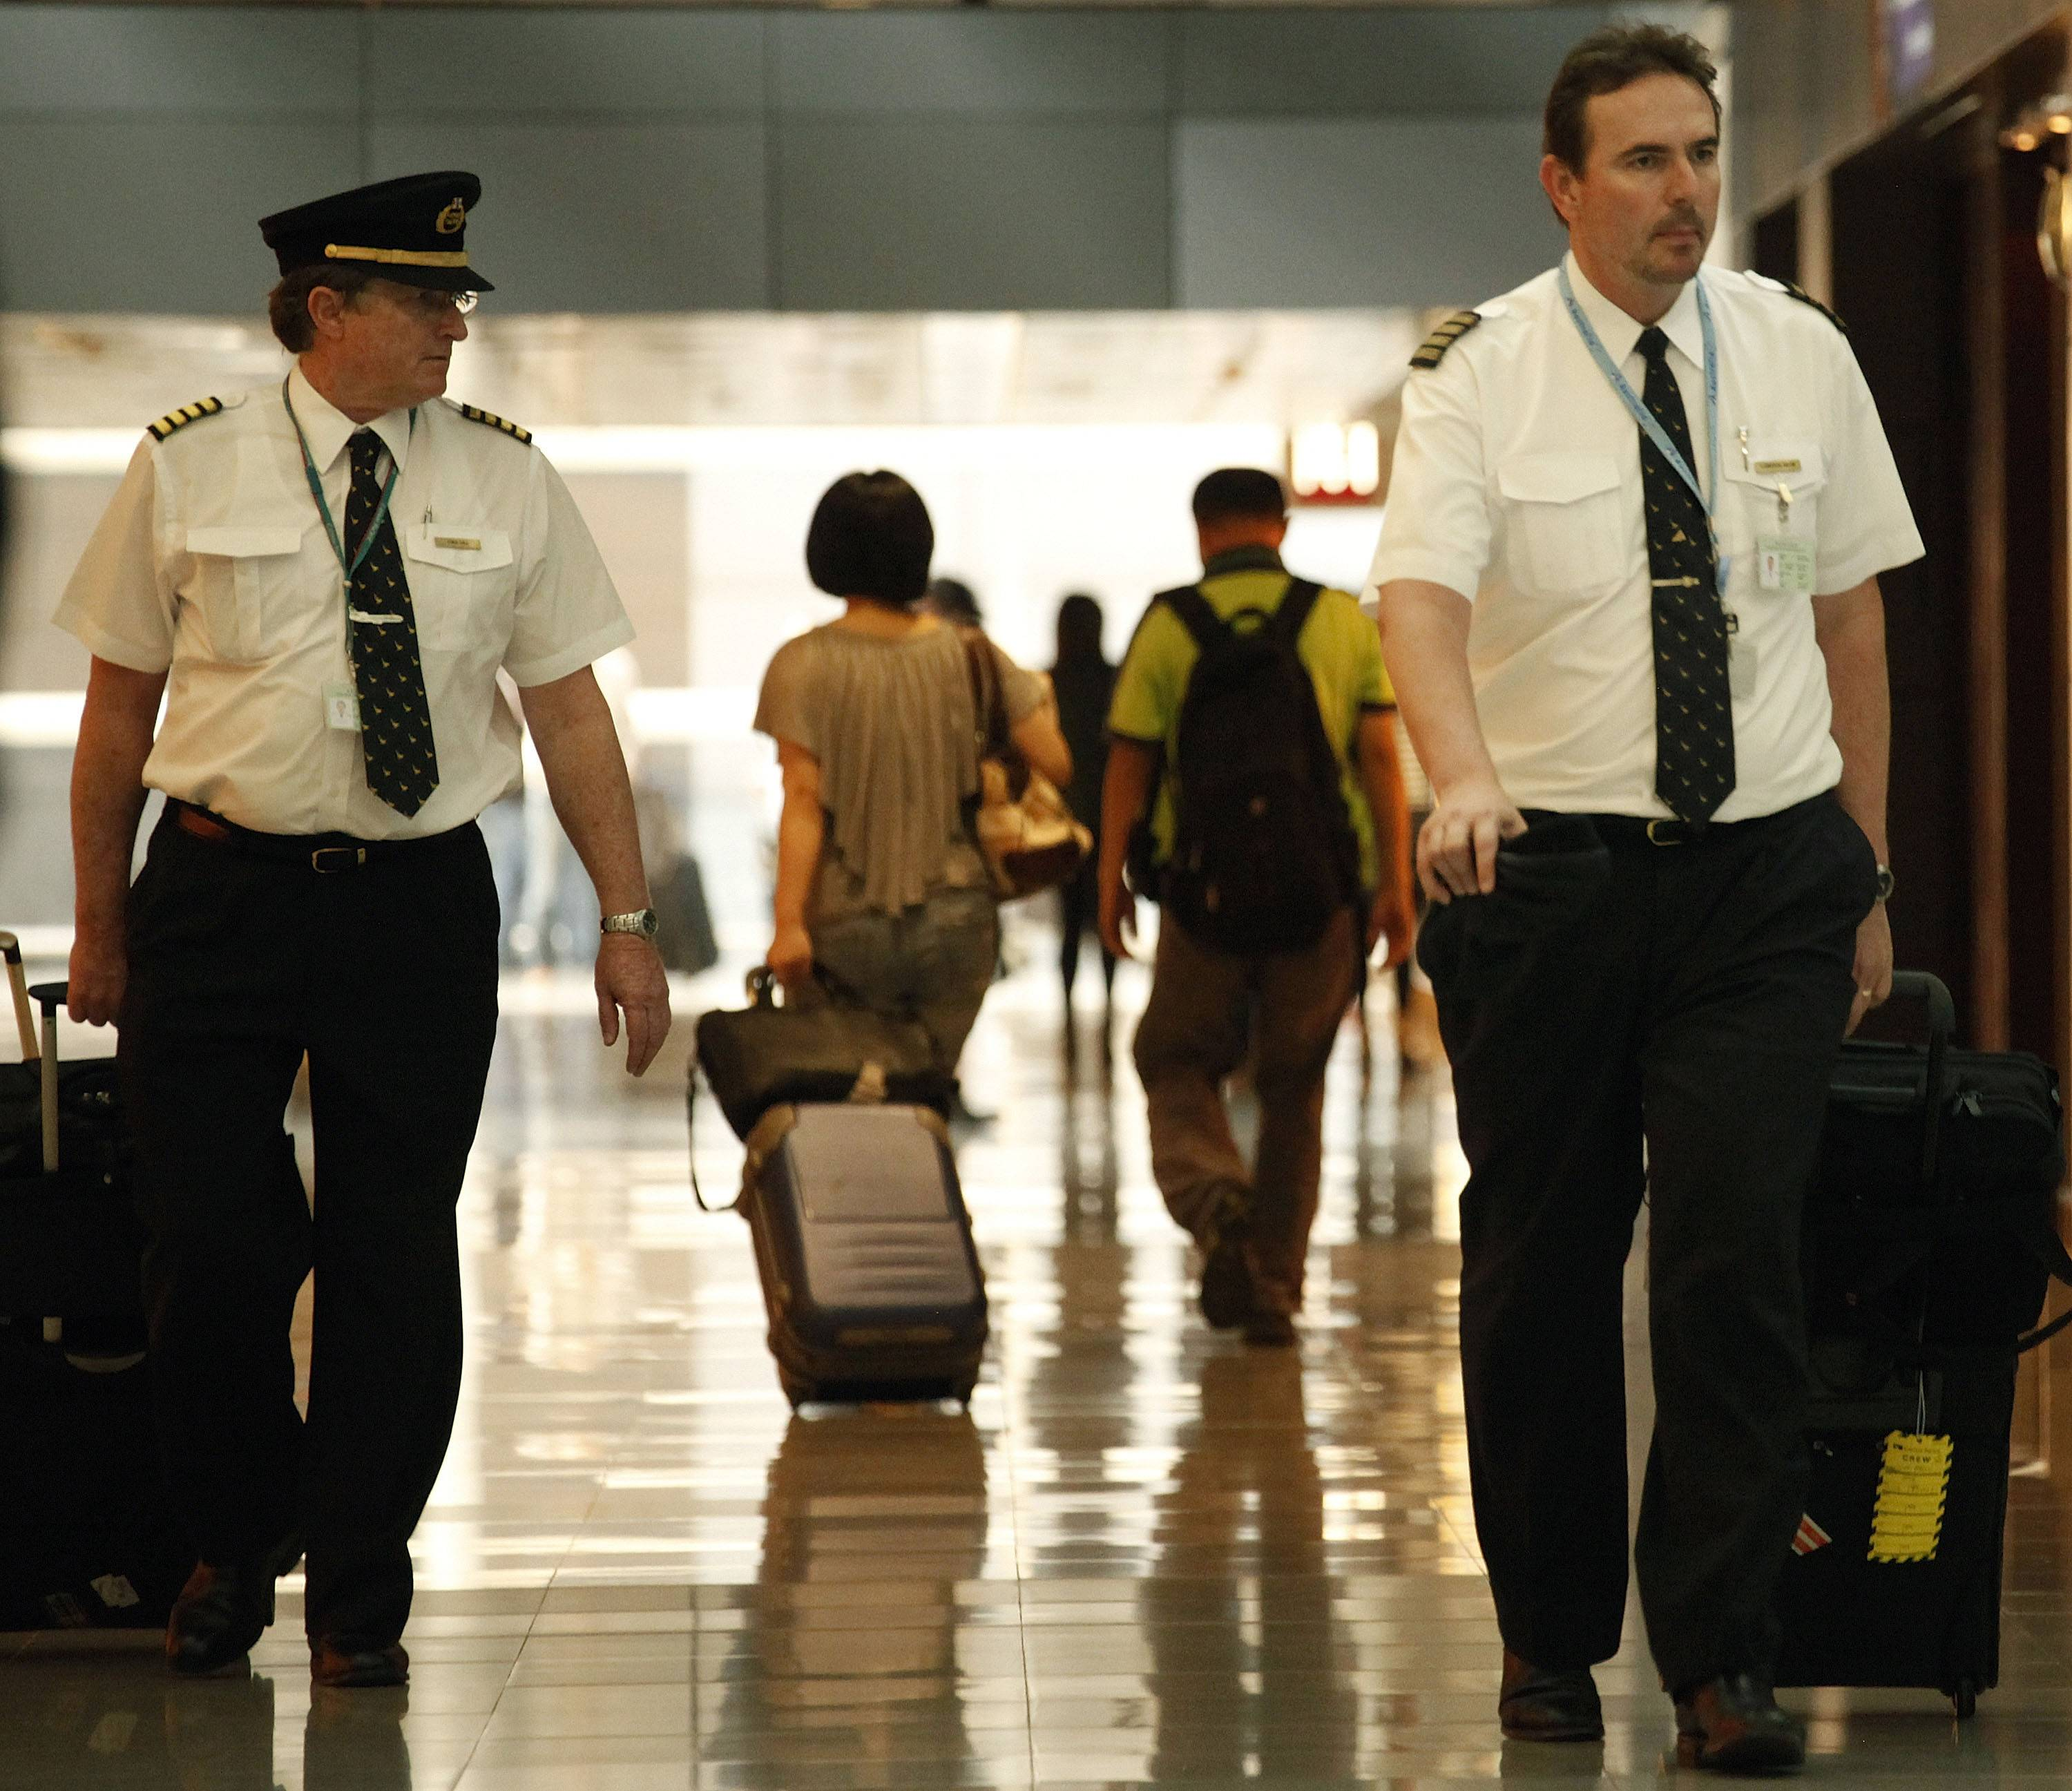 In this  Nov. 30, 2011 photo, two pilots from Cathay Pacific walk in the Hong Kong International Airport in Hong Kong.  The U.S. airline industry will need to hire 1,900 to 4,500 new pilots annually over the next 10 years due to an expected surge in retirements of pilots reaching age 65 and increased demand for air travel, the Government Accountability Office said in the report obtained late Thursday, Feb. 27, 2014.